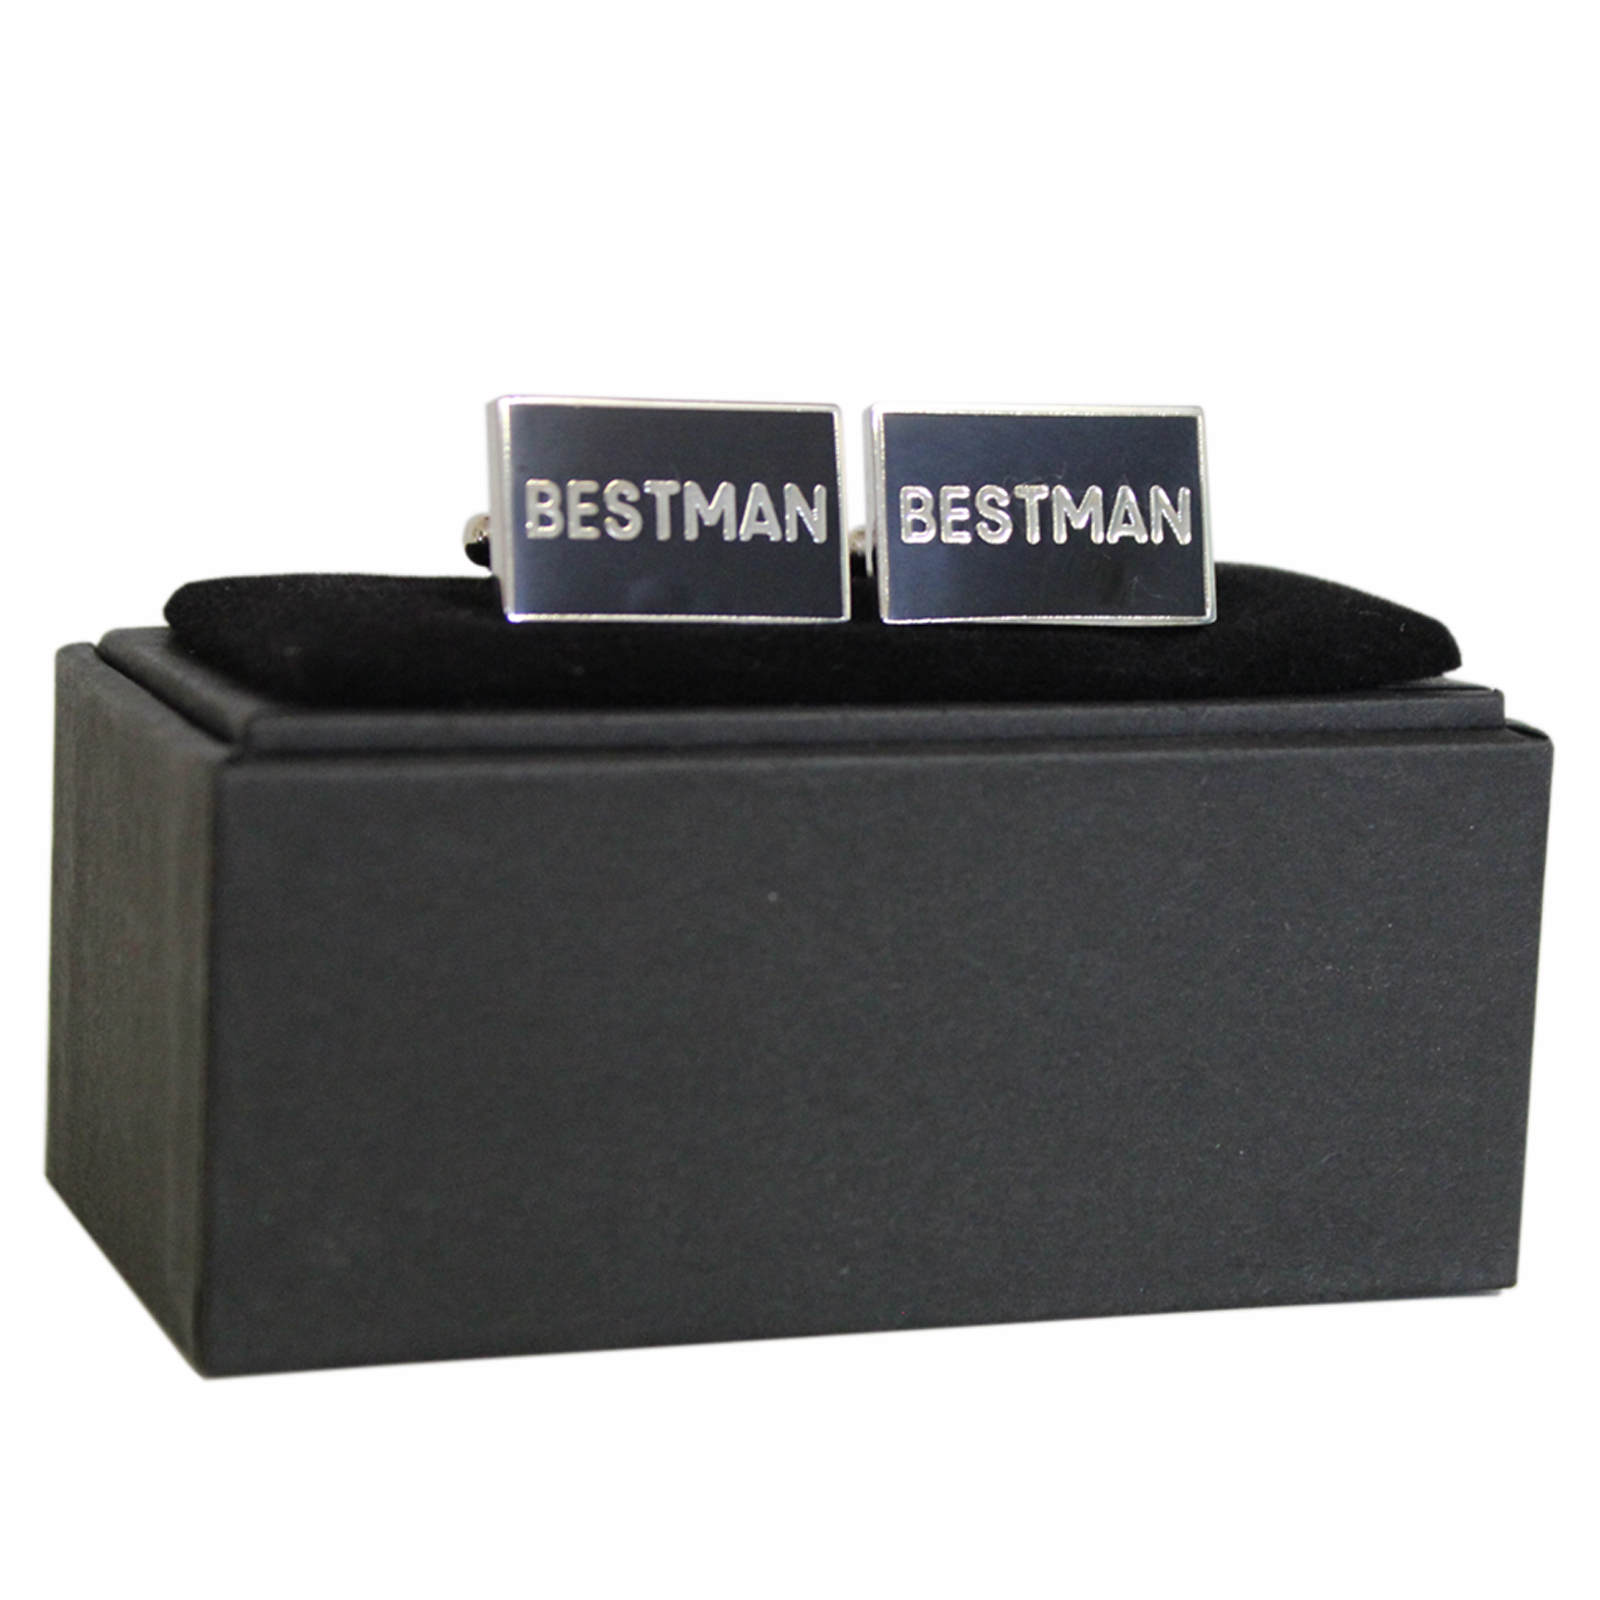 Polished Pewter Rectangular Best Man Design Cufflinks